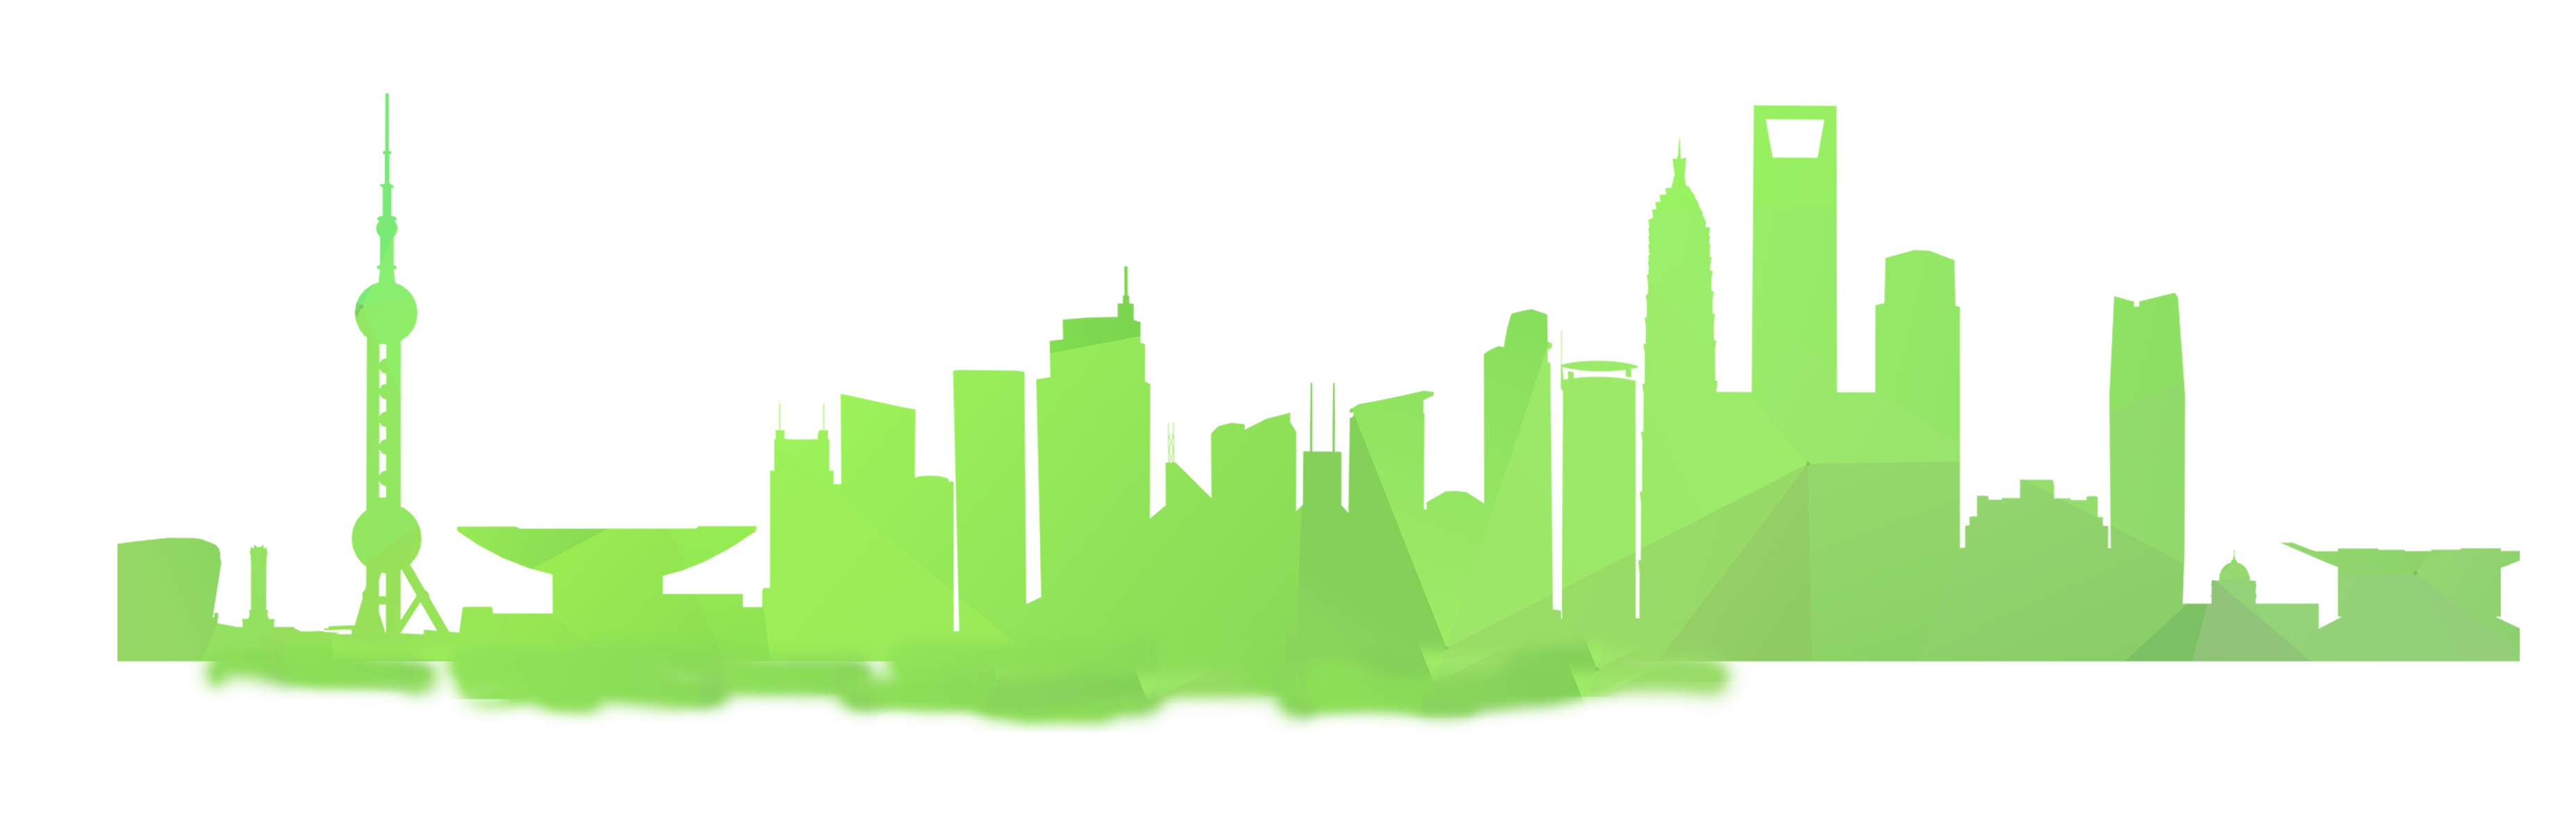 3708x1188 Atlanta Drawing Skyline Chicago Transparent Png Clipart Free